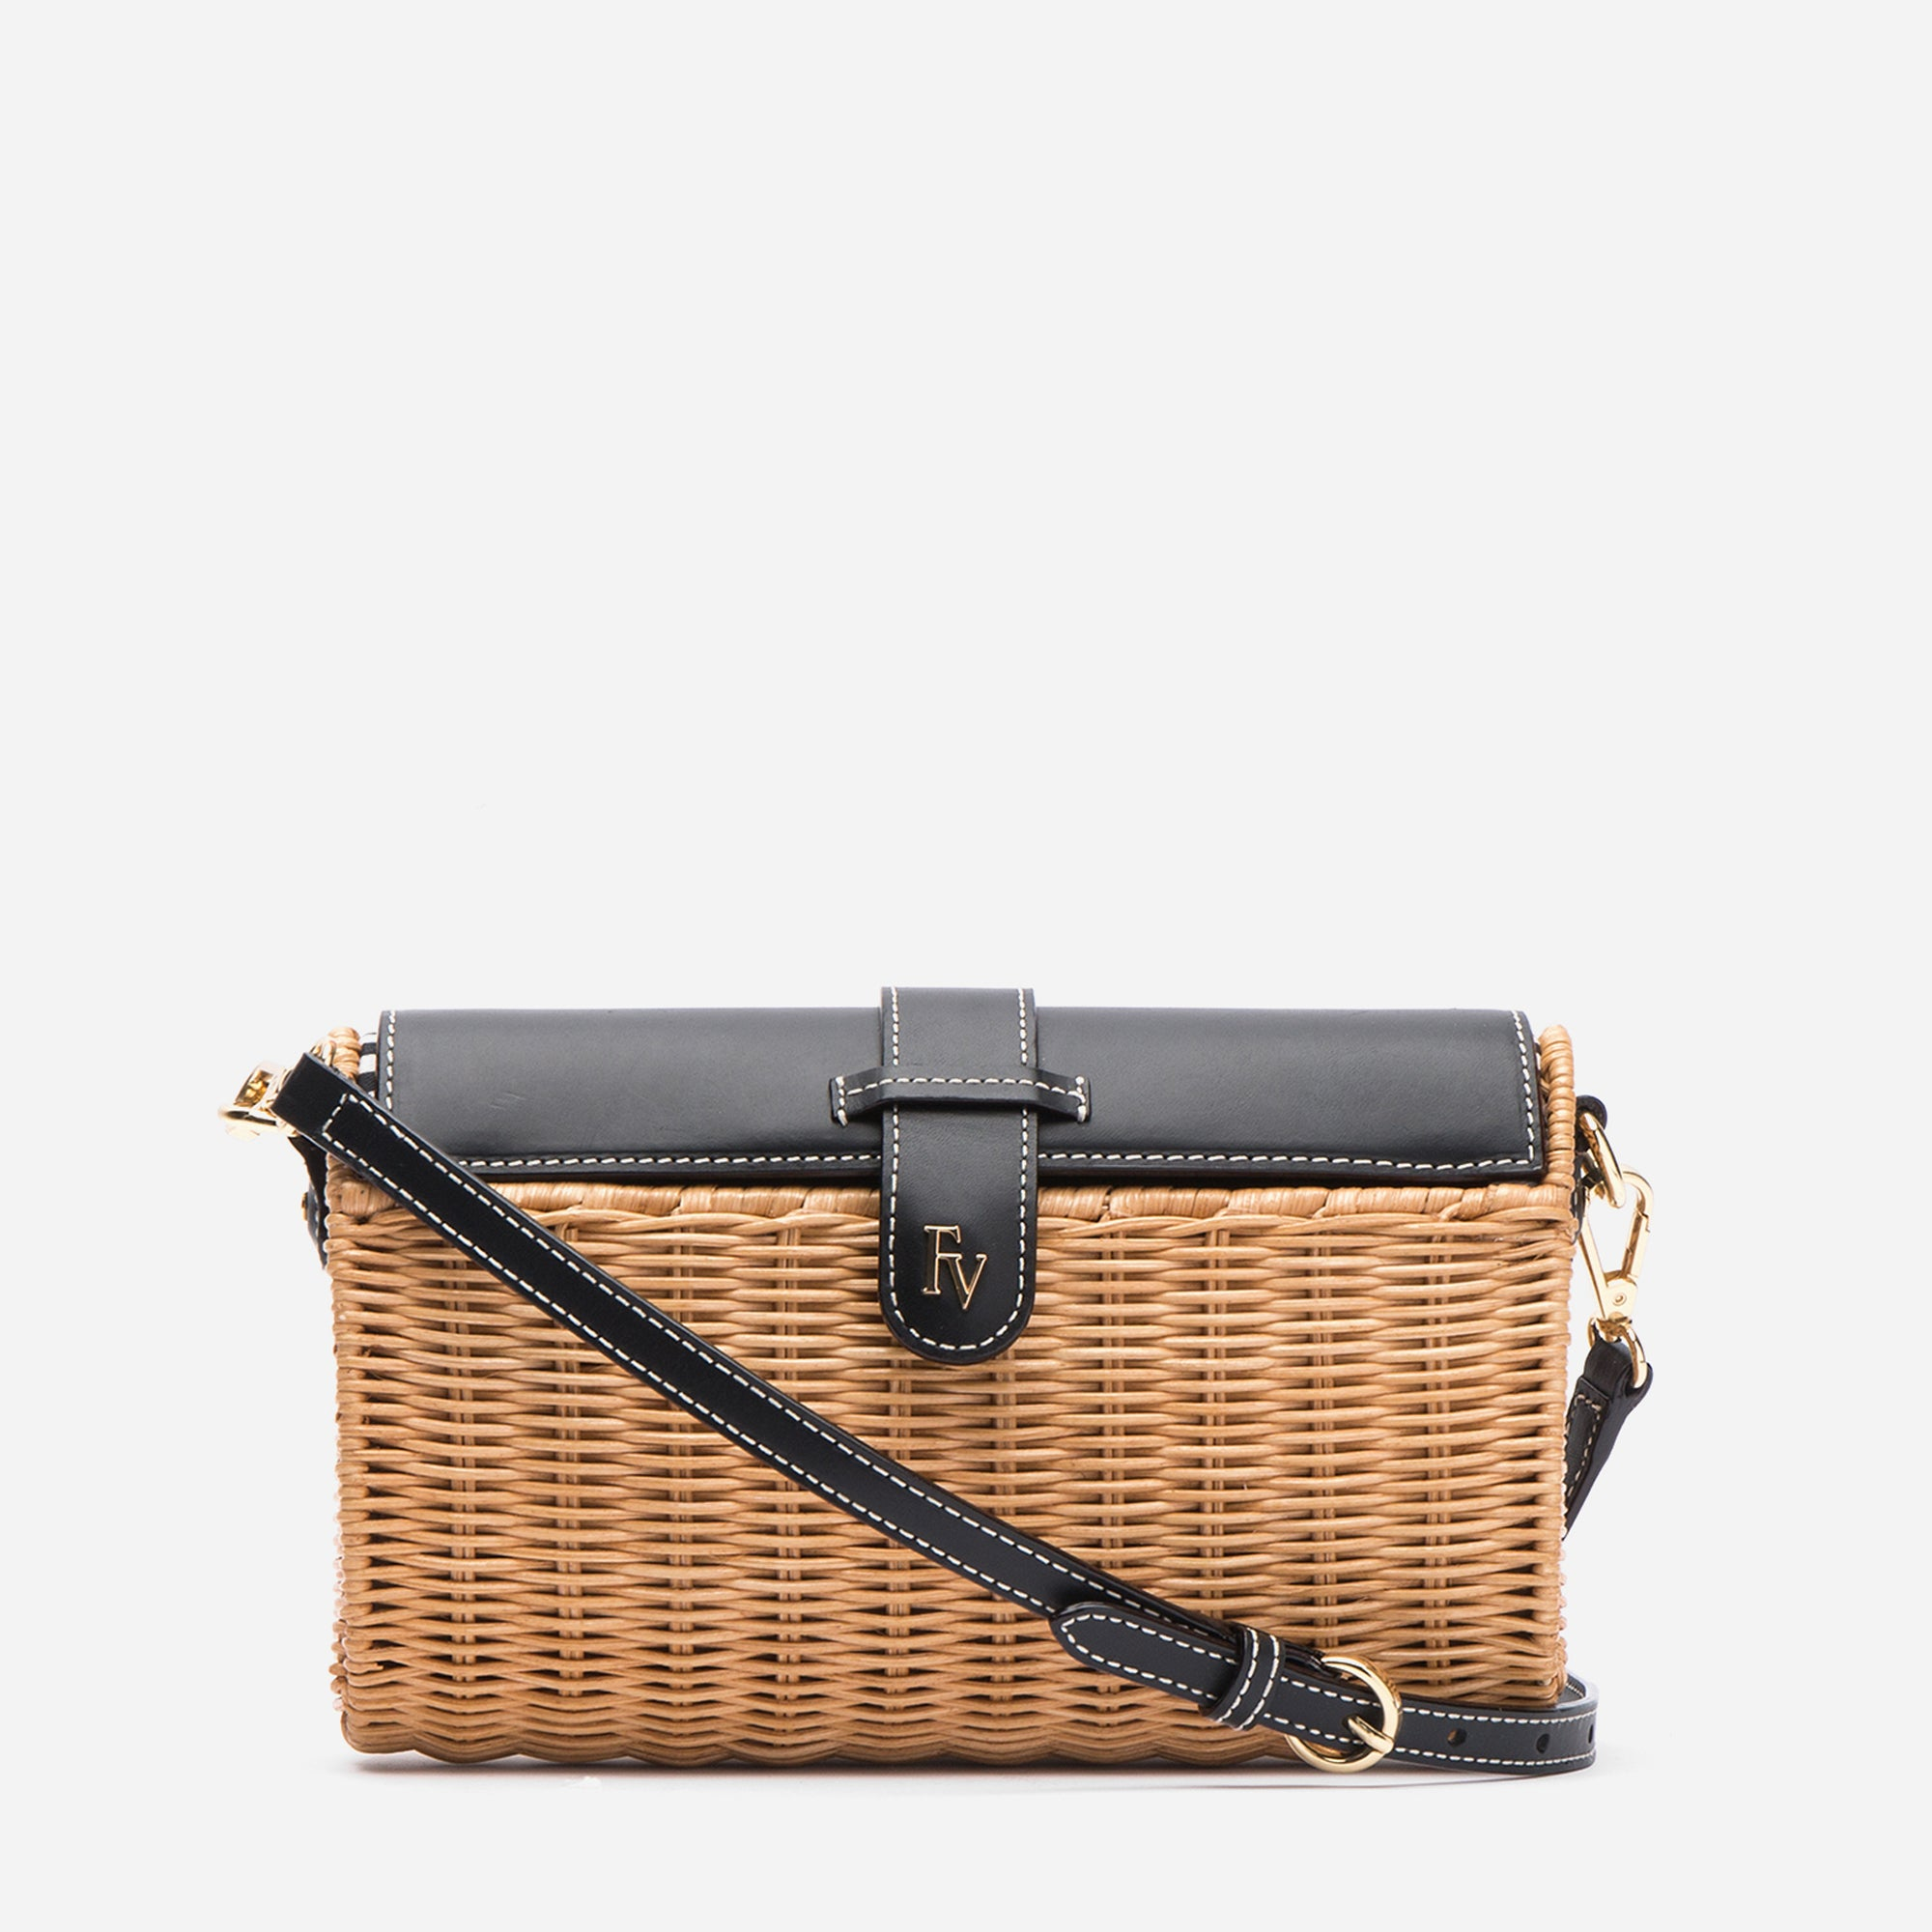 Woven wicker basket bag with vachetta leather accents and ticking stripe lining. Shop Frances Valentine.